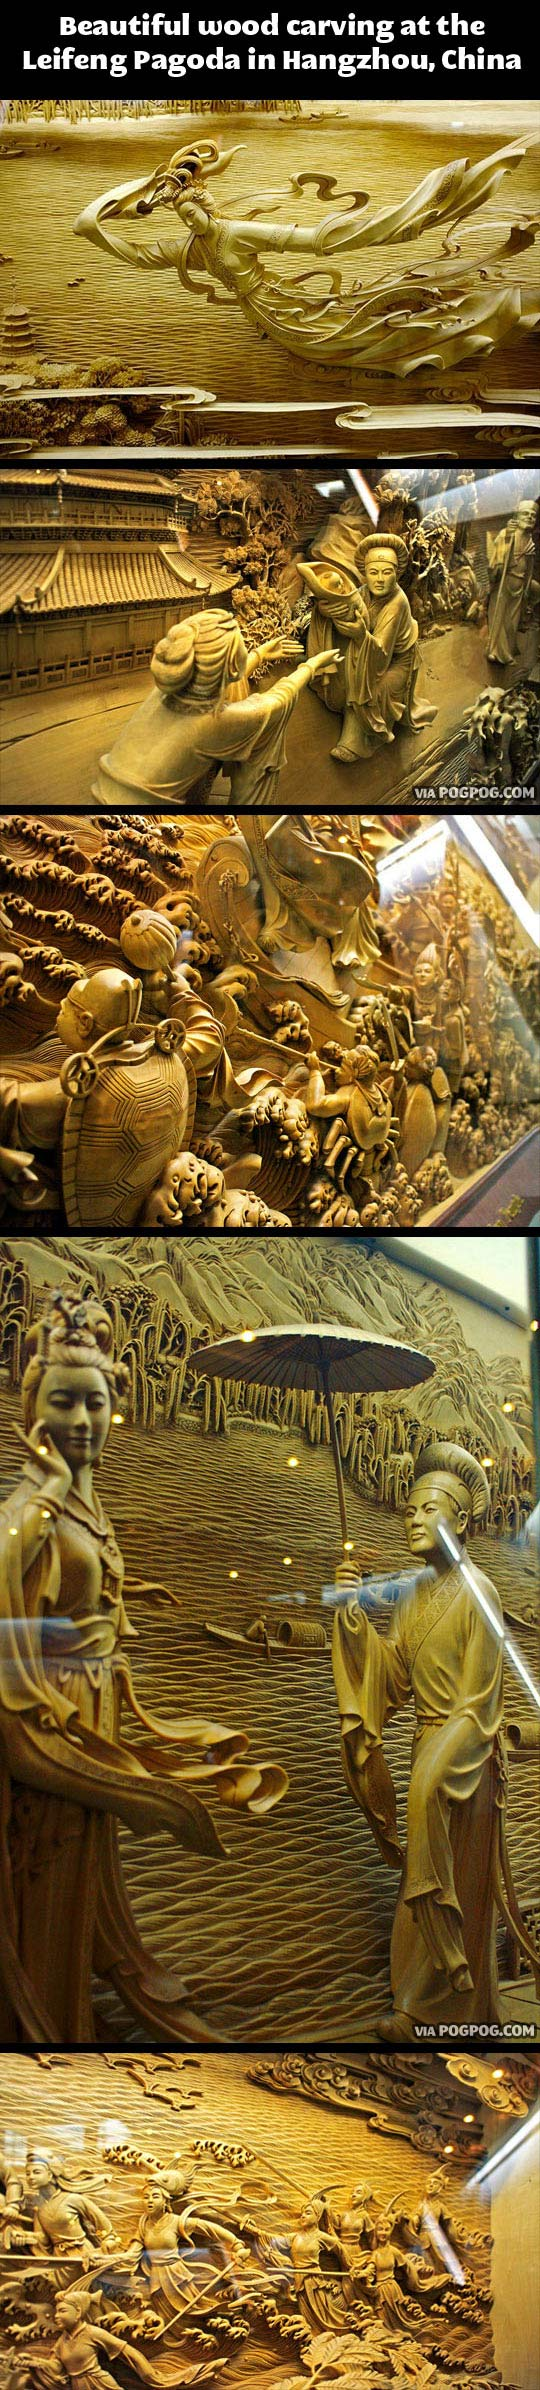 Beautiful wood carving in China…